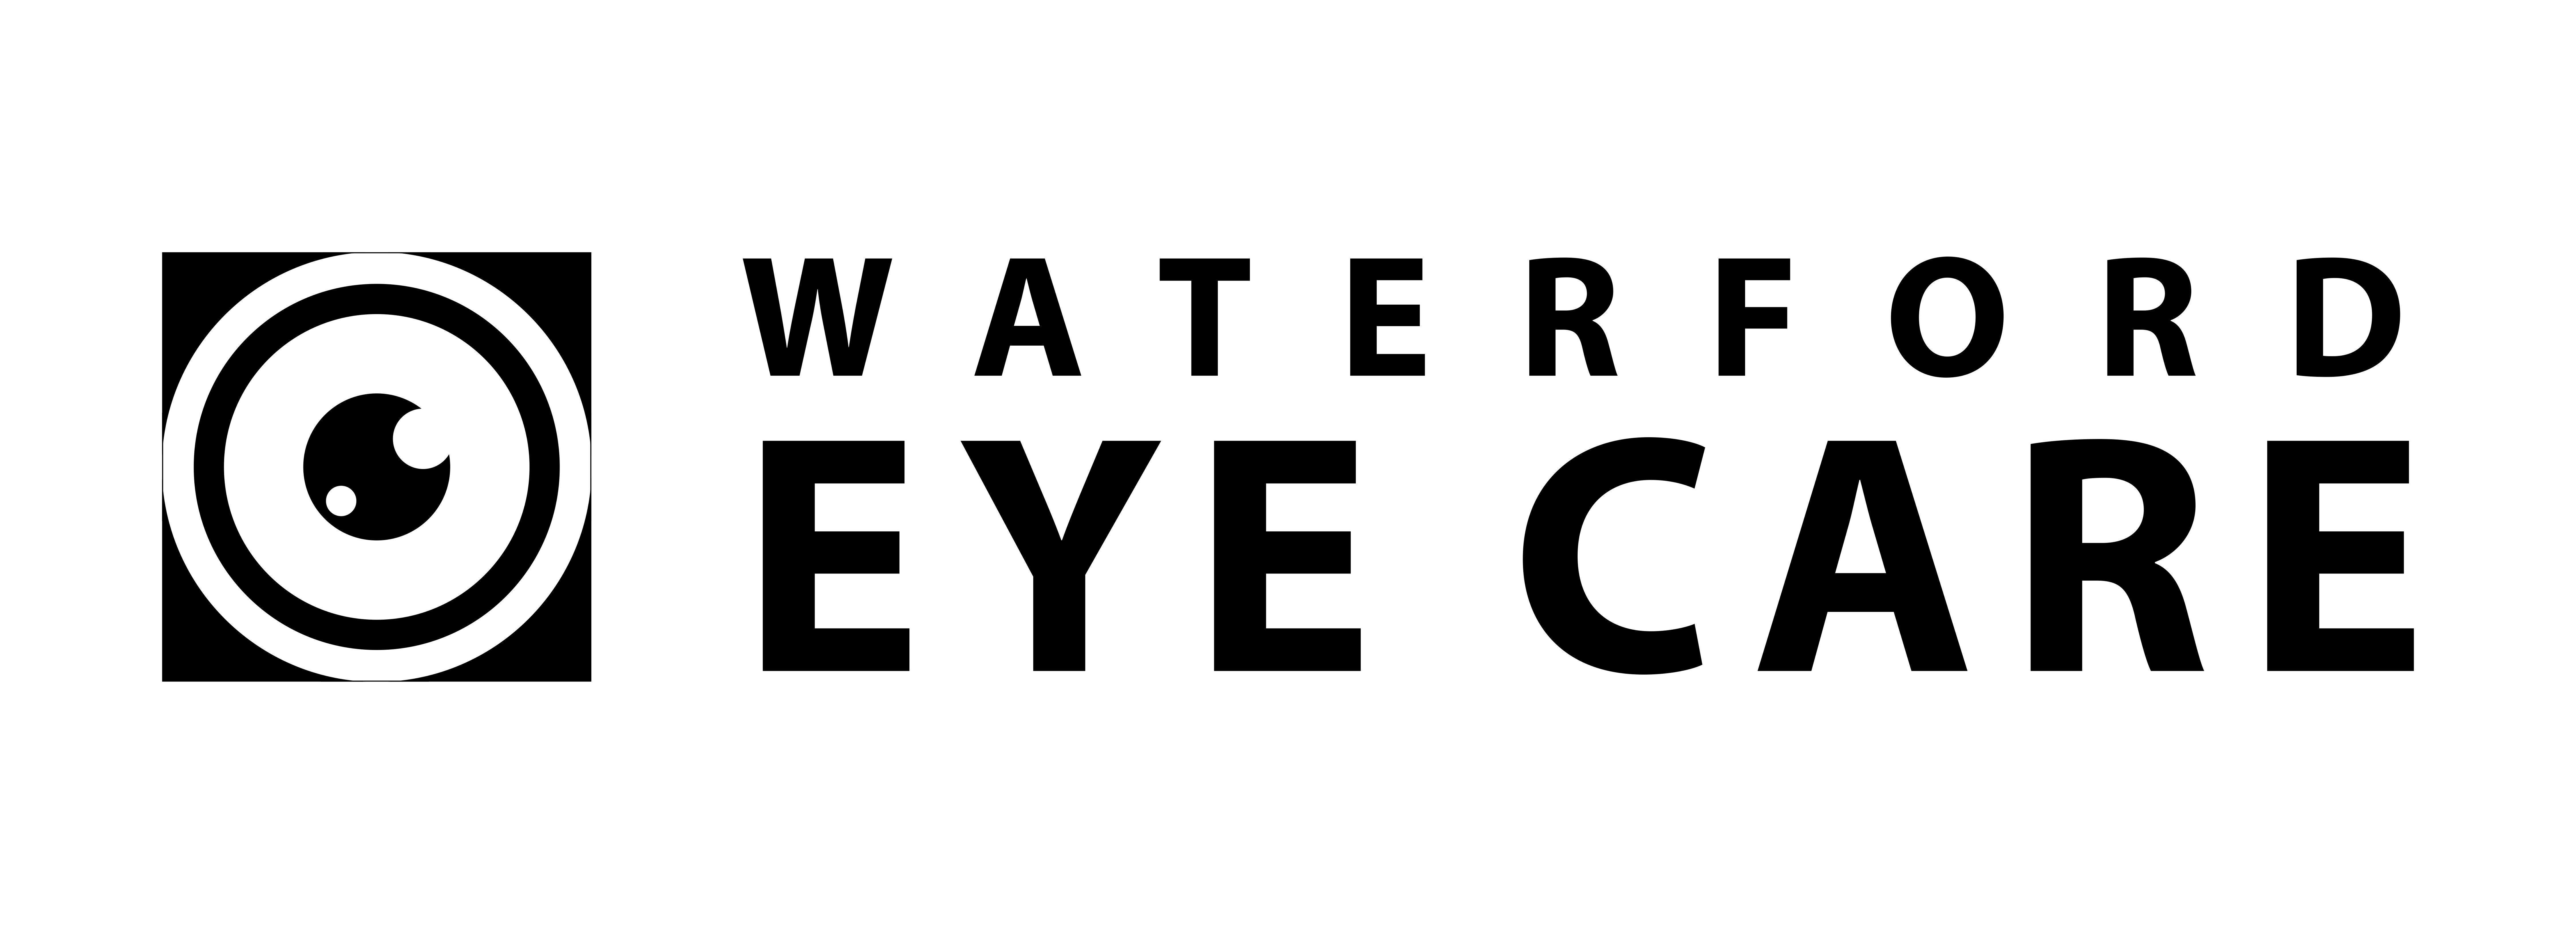 Waterford Eye Care